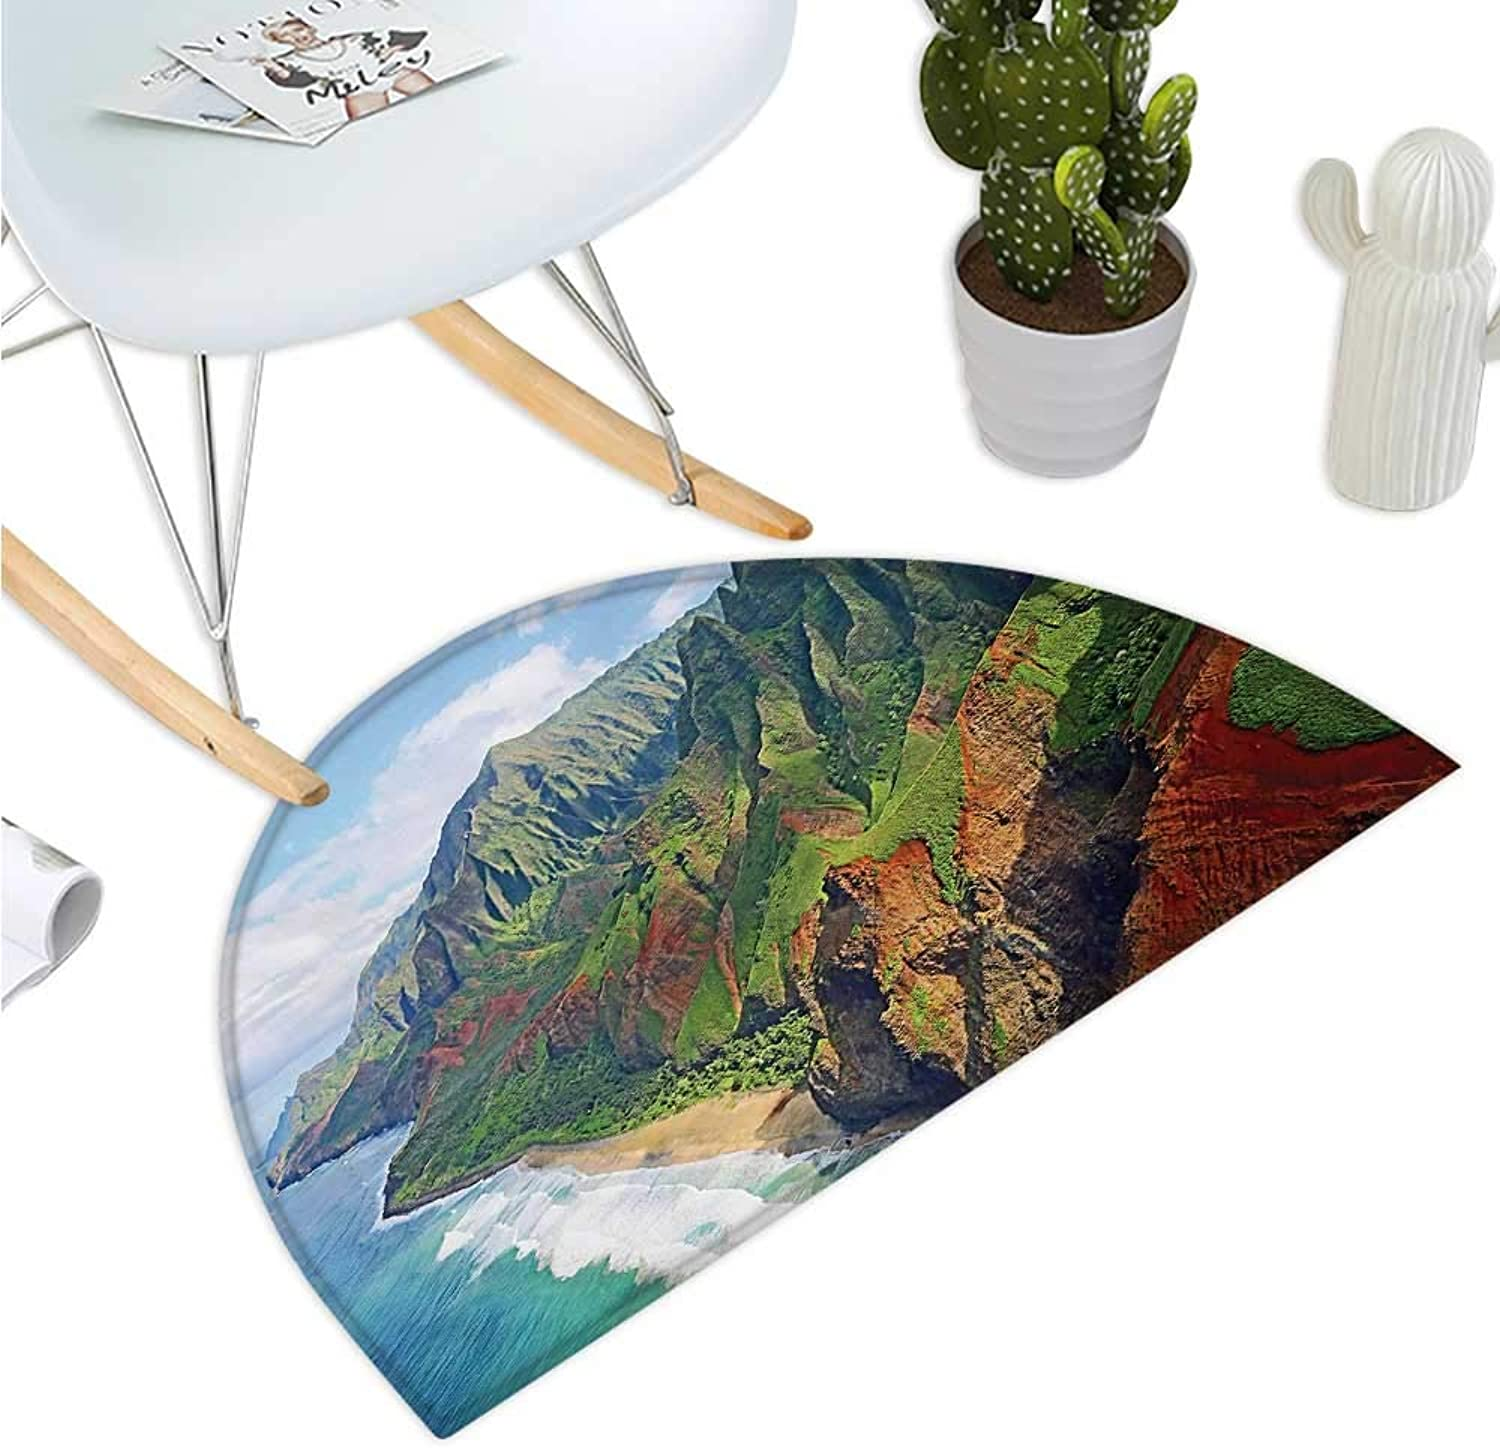 Hawaiian Semicircular Cushion Na Pali Coast Kauai Hawaii Seashore Greenery Adventurous Journey Landscape Entry Door Mat H 39.3  xD 59  Green Redwood bluee